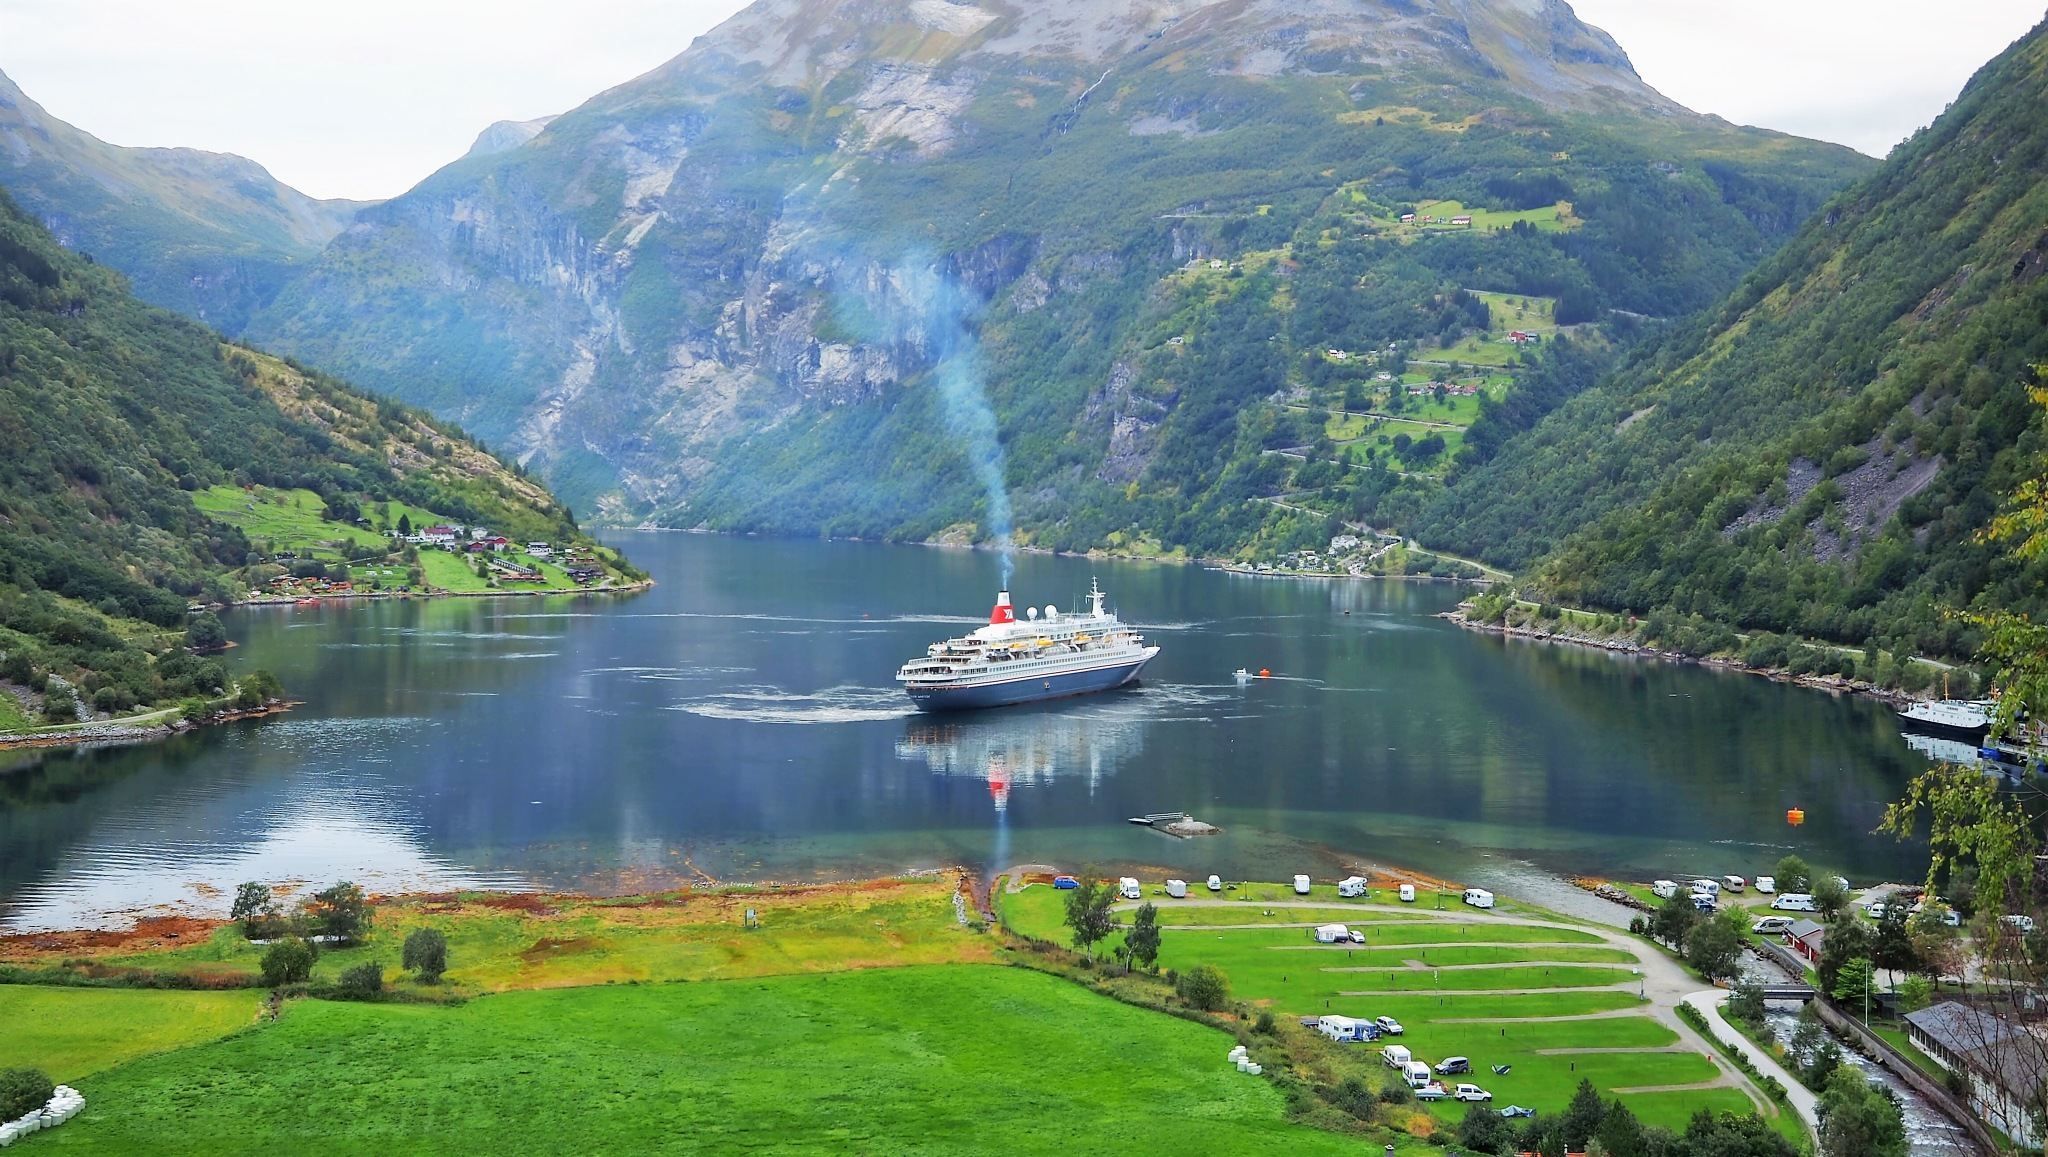 The Fjord at Geiranger Norway by william.l.bosley